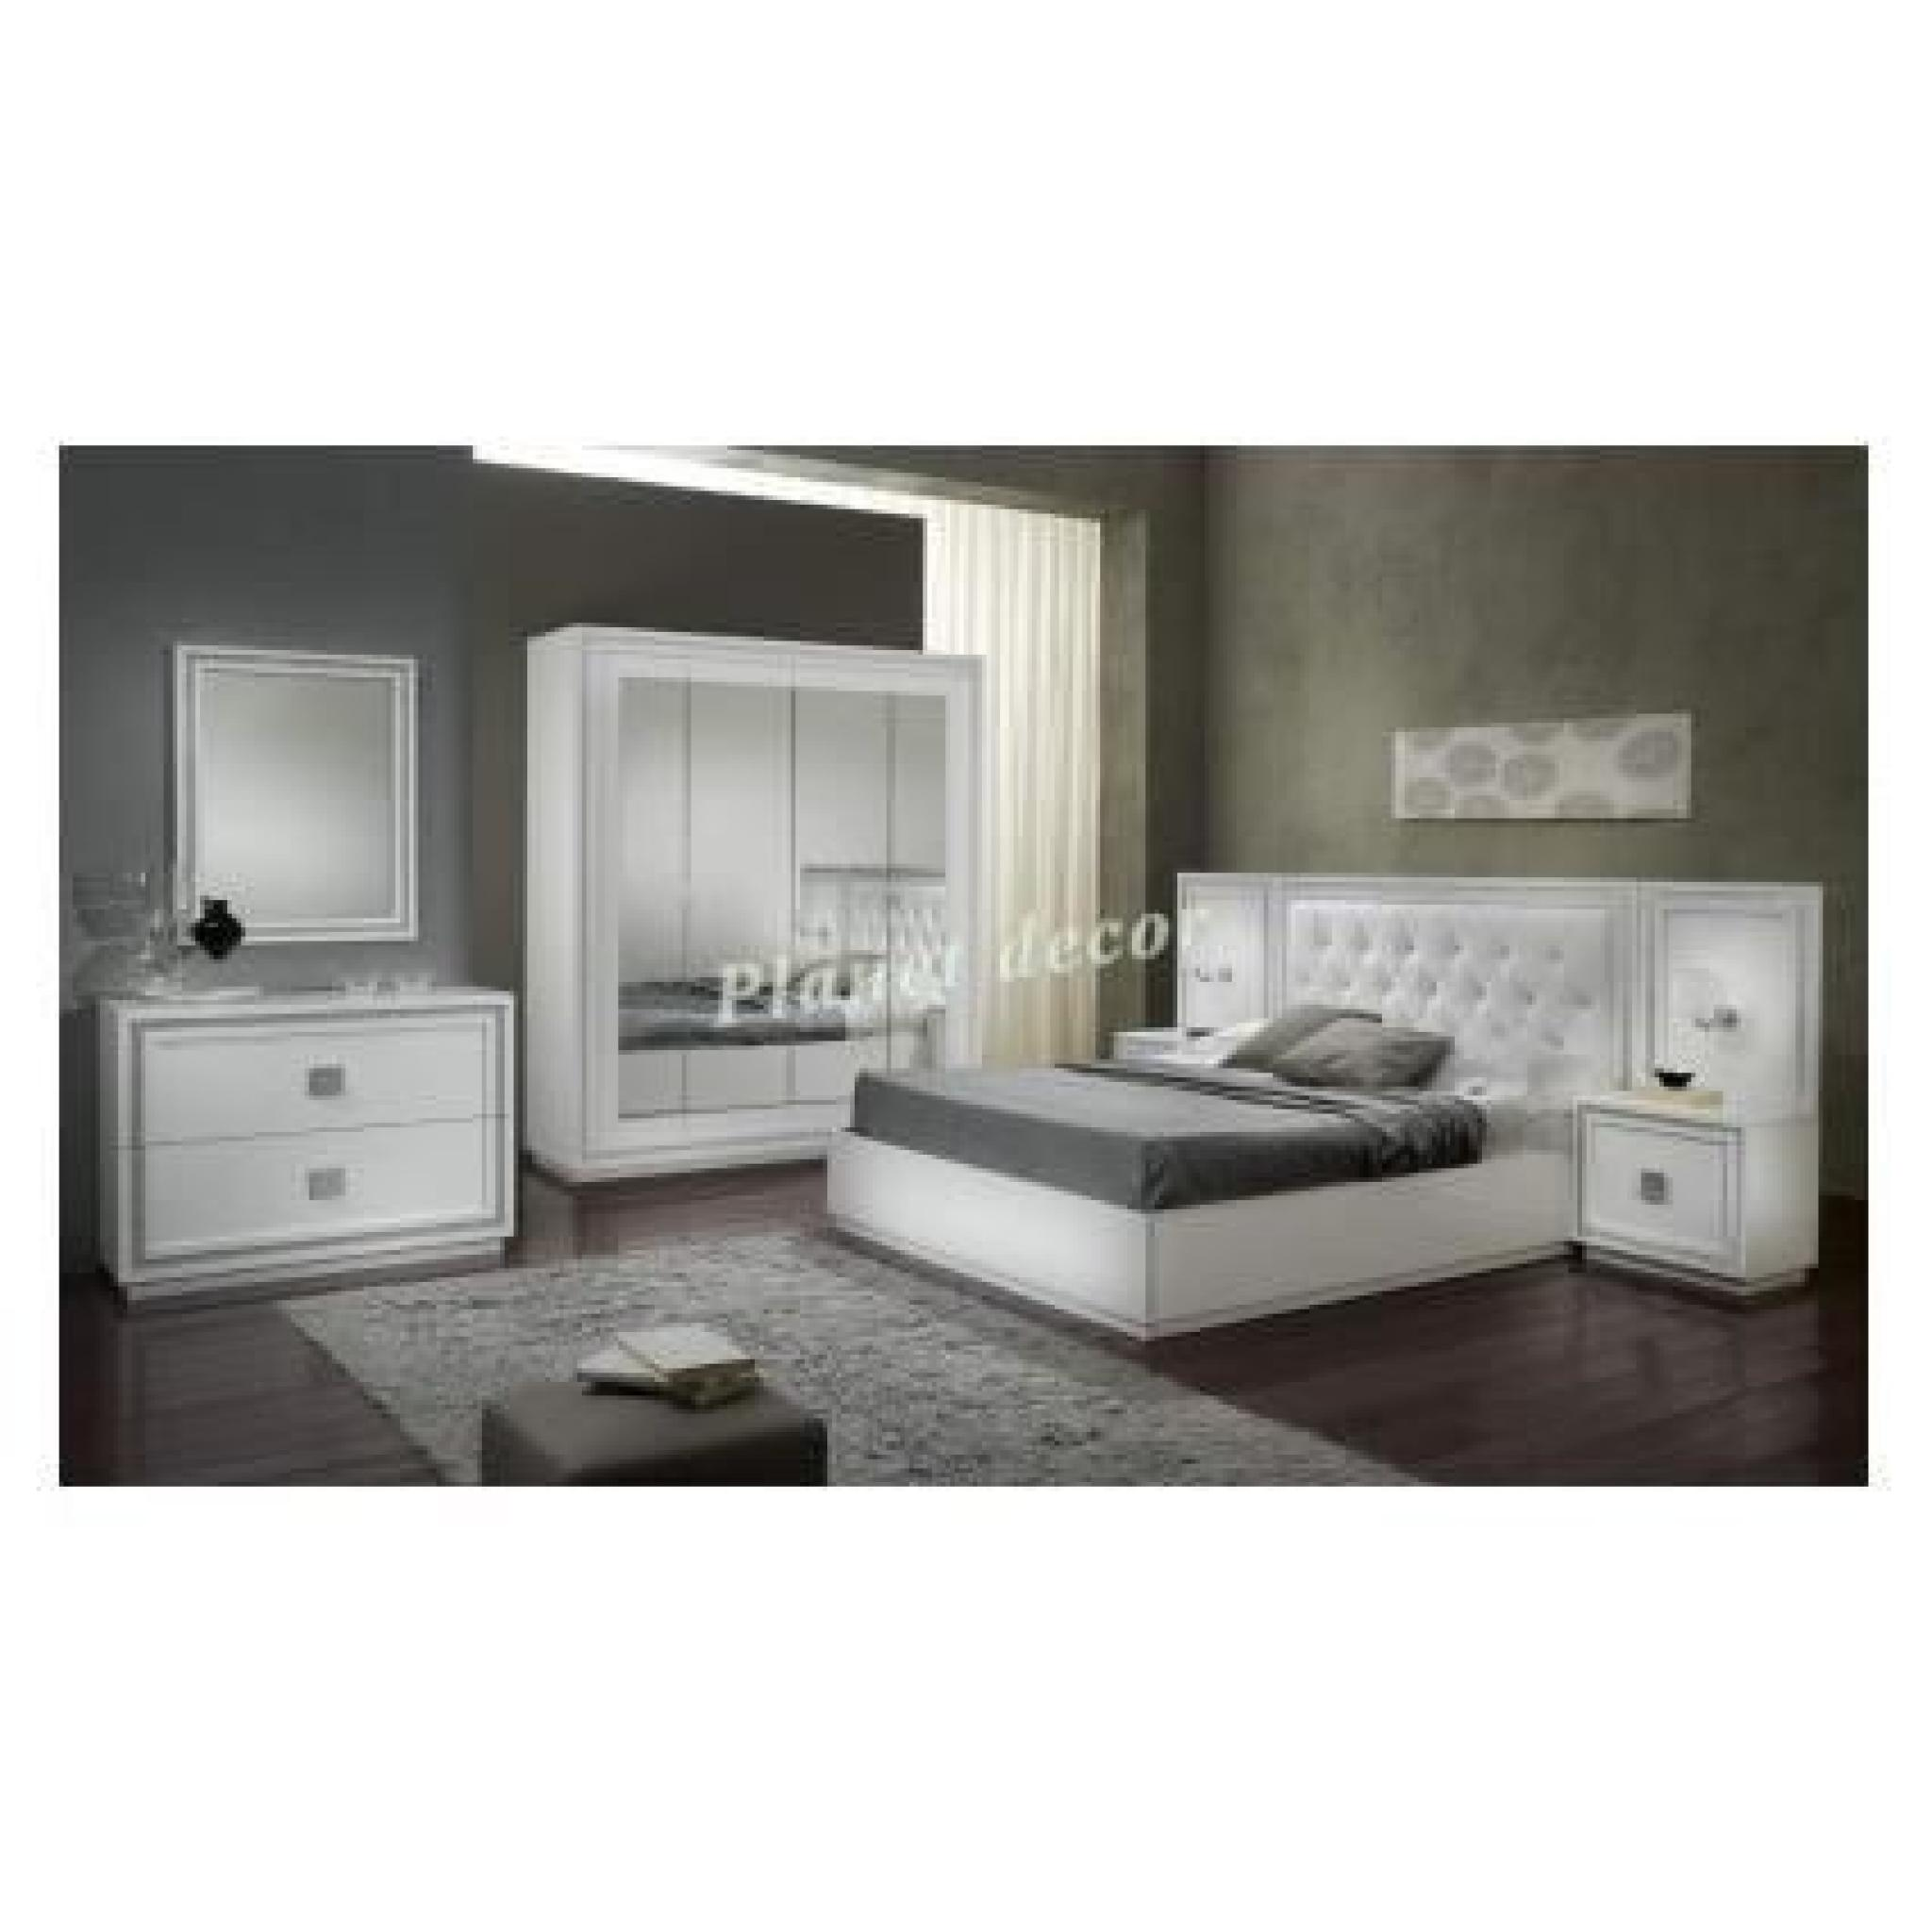 chambre coucher complete model kristel blanc achat vente chambre complete pas cher. Black Bedroom Furniture Sets. Home Design Ideas